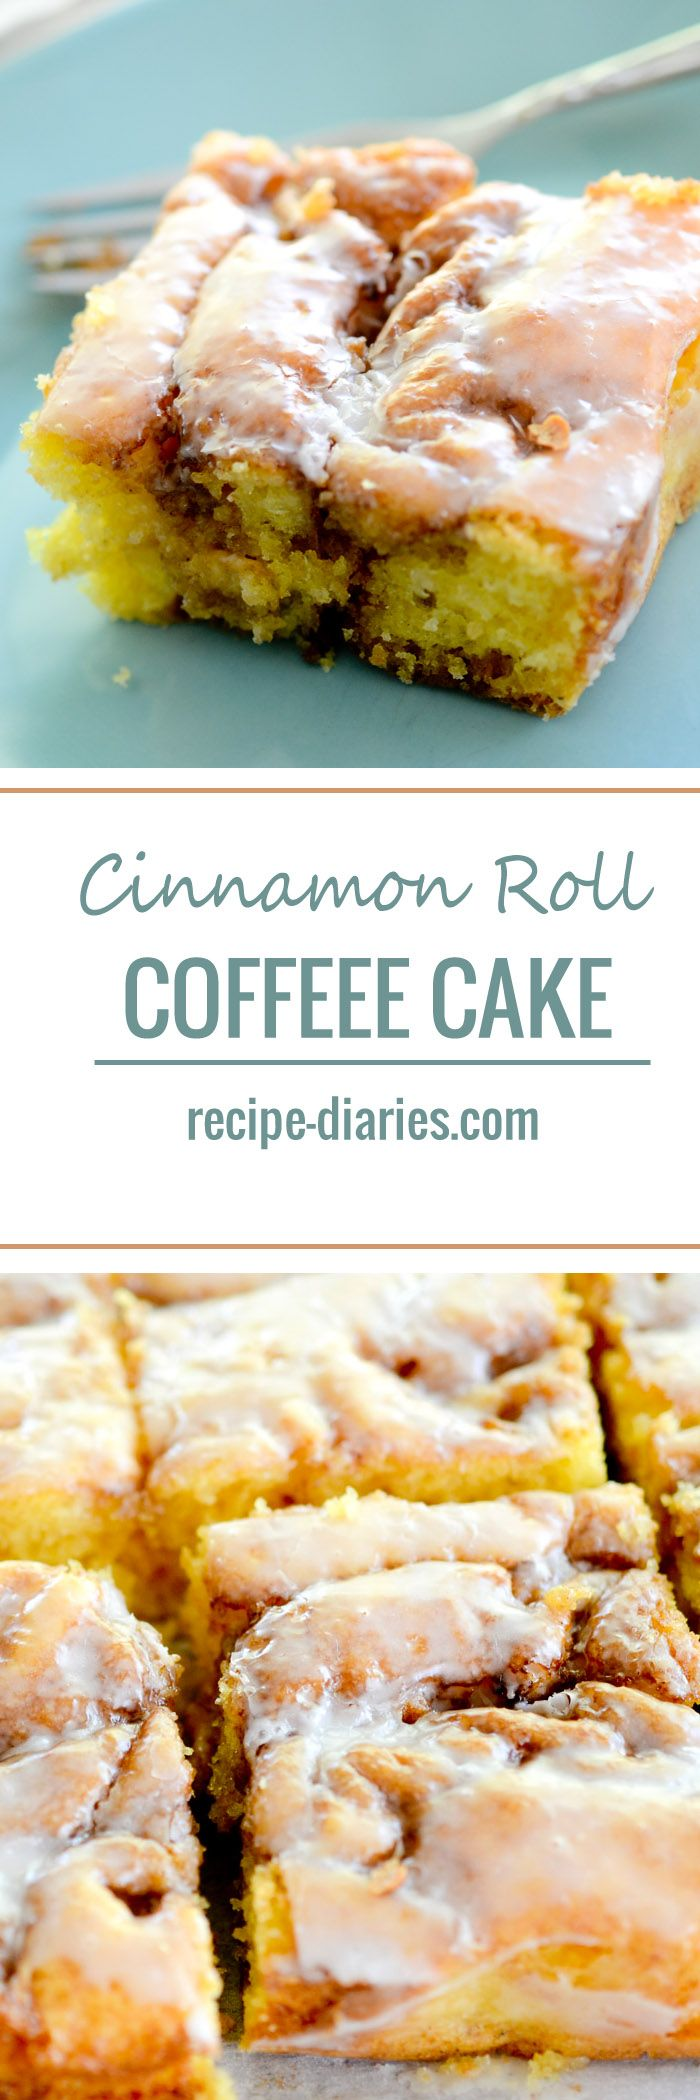 Cinnamon Roll Coffee Cake - Recipe Dairies